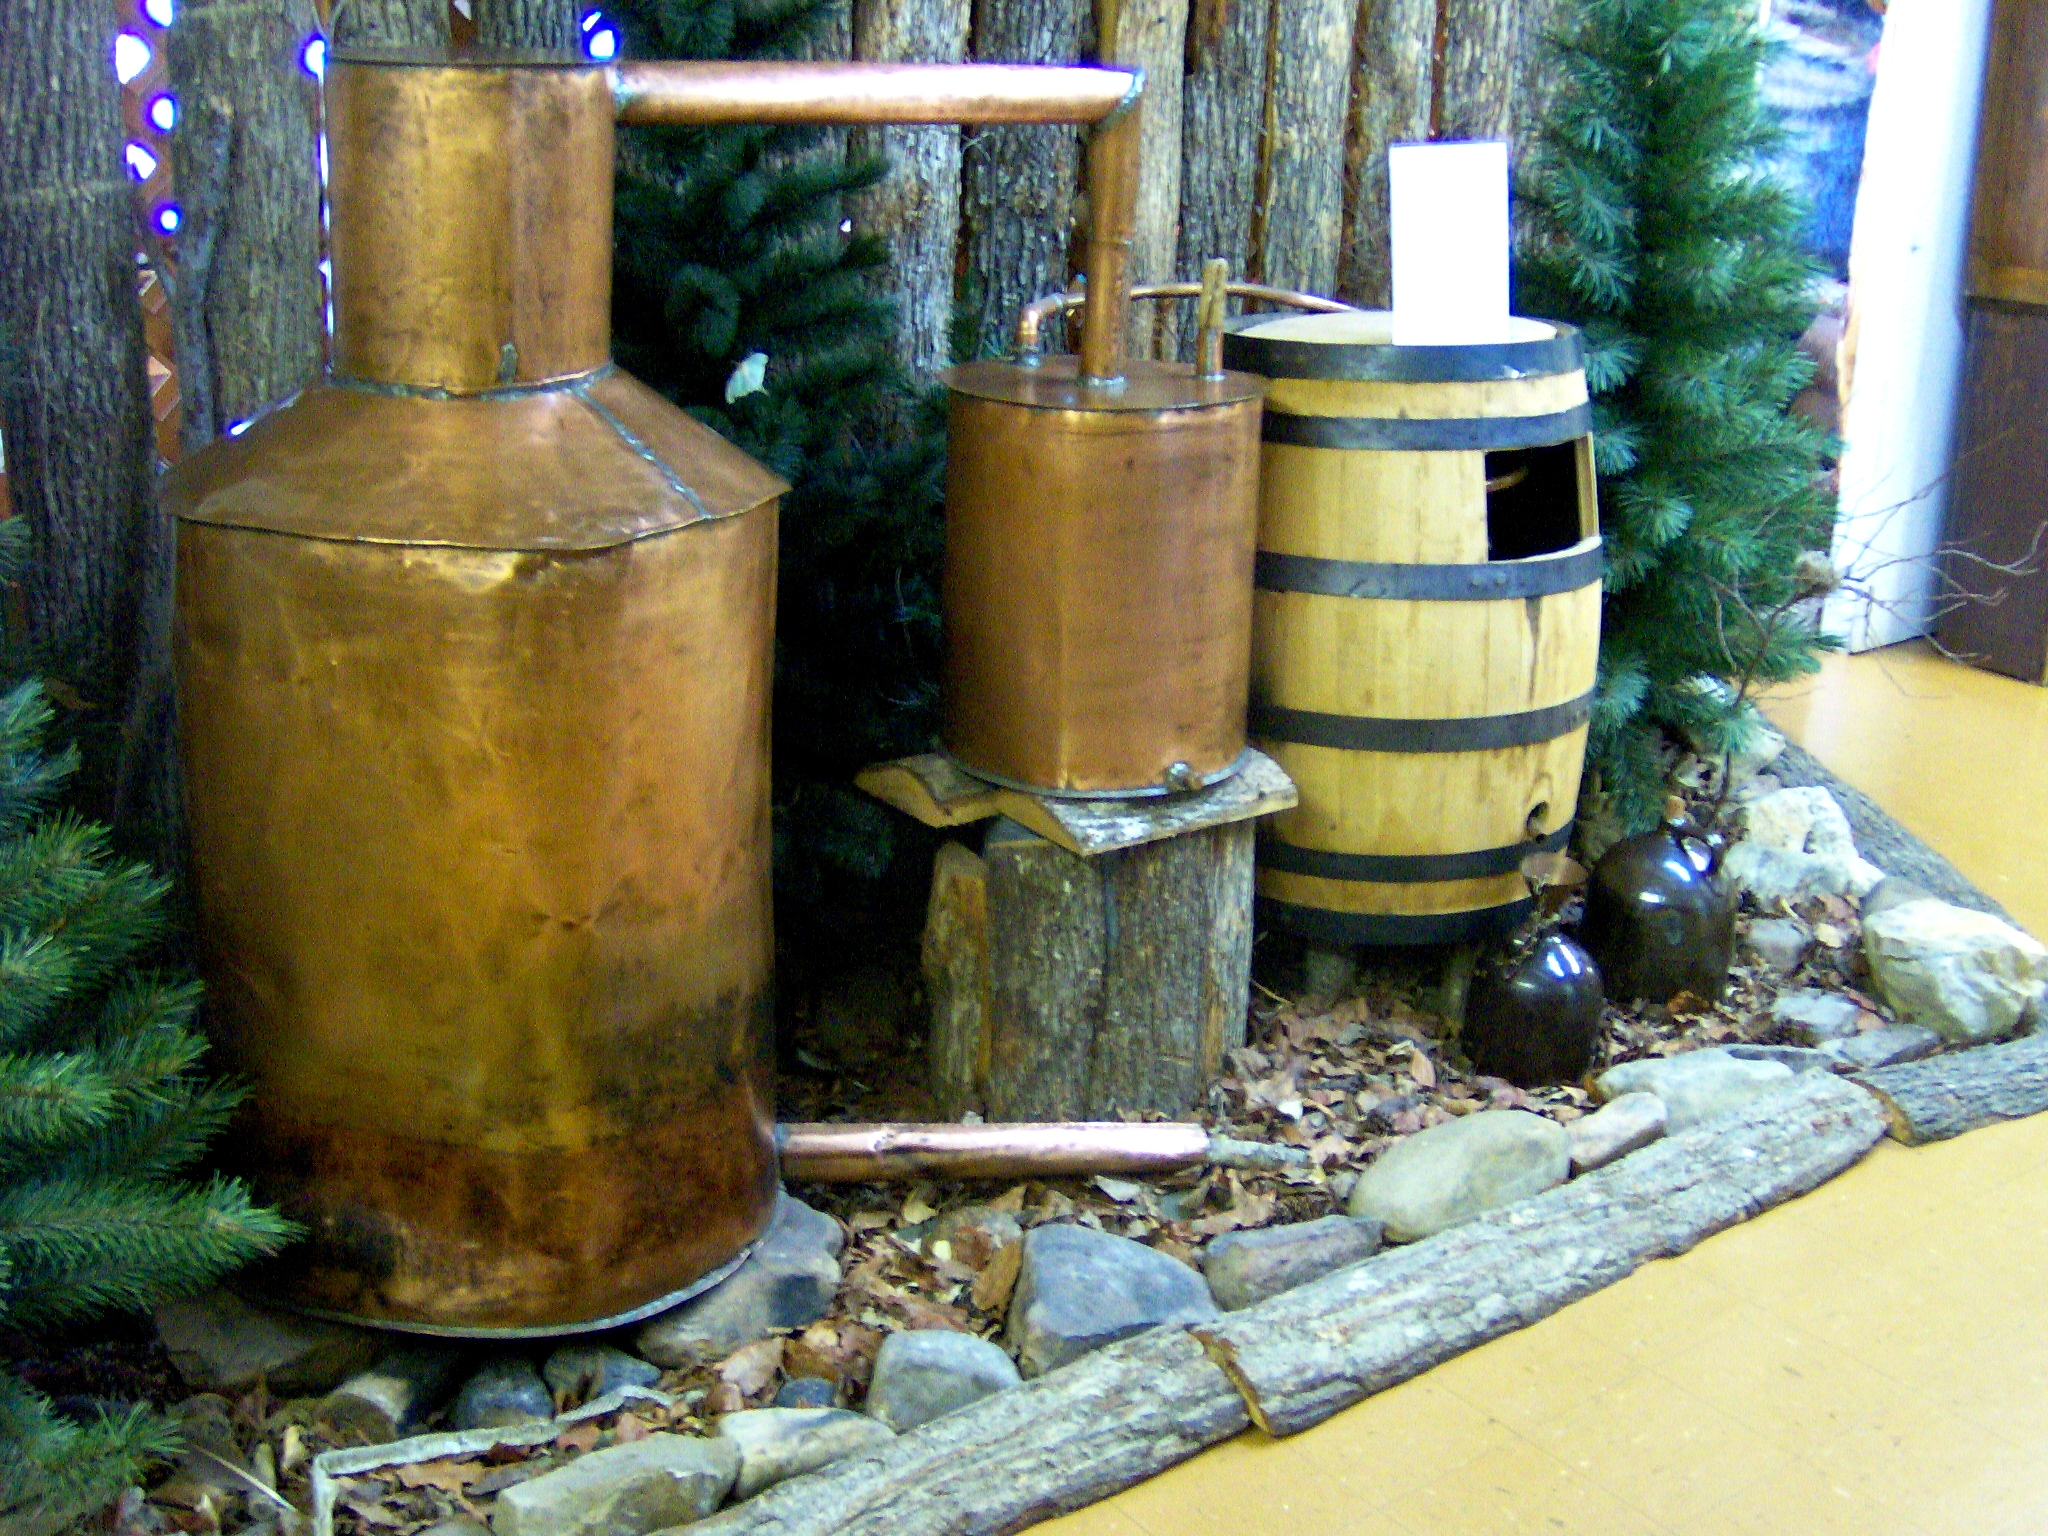 Keg Moonshine Still File:strearns-moonshine-still-